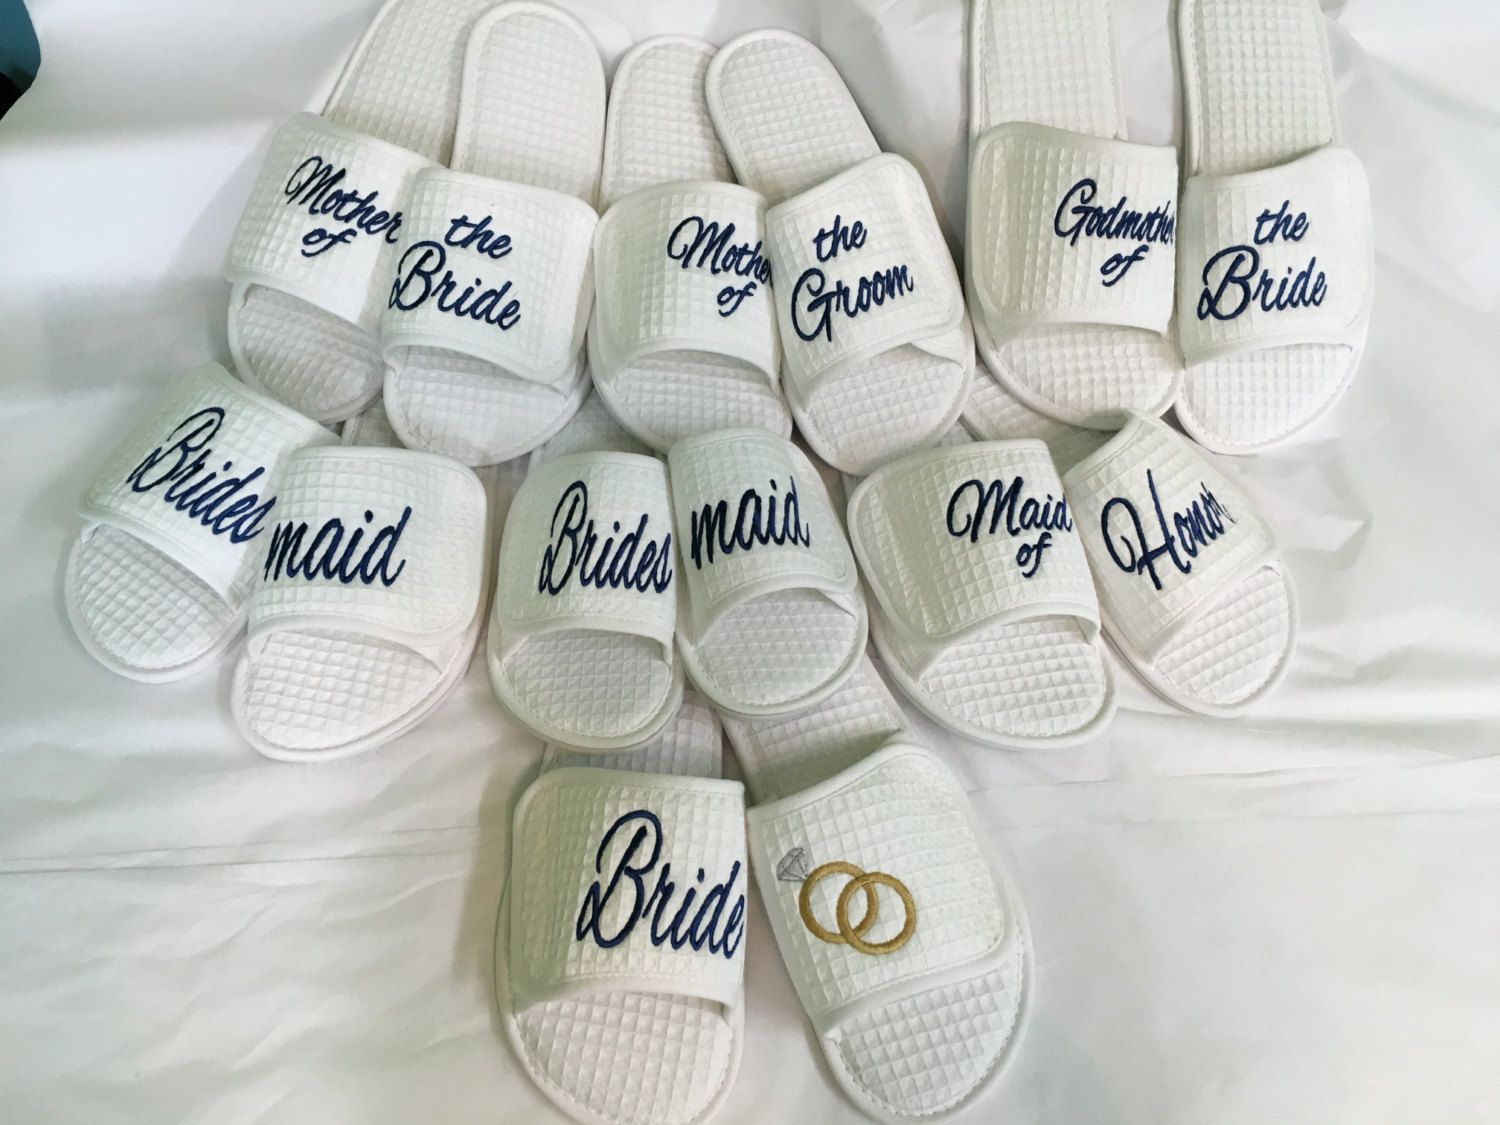 d960a571c Premium Personalized Embroidered Spa Slippers Bride